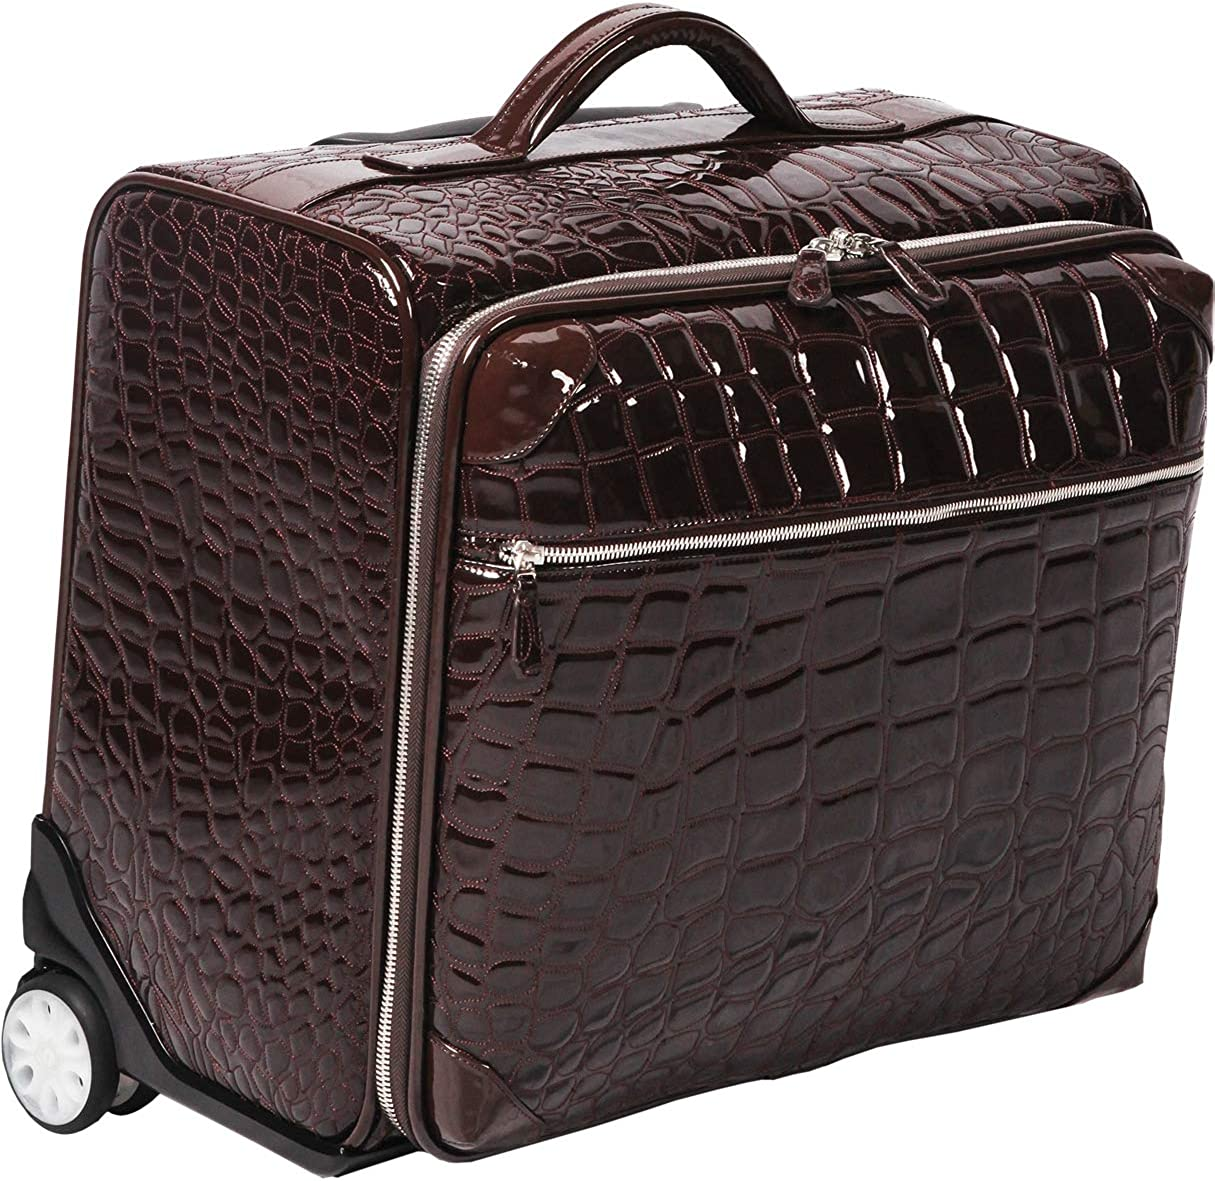 Ouul Alligator Embossed Faux Leather 18-inch Rolling Carry On Suitcase